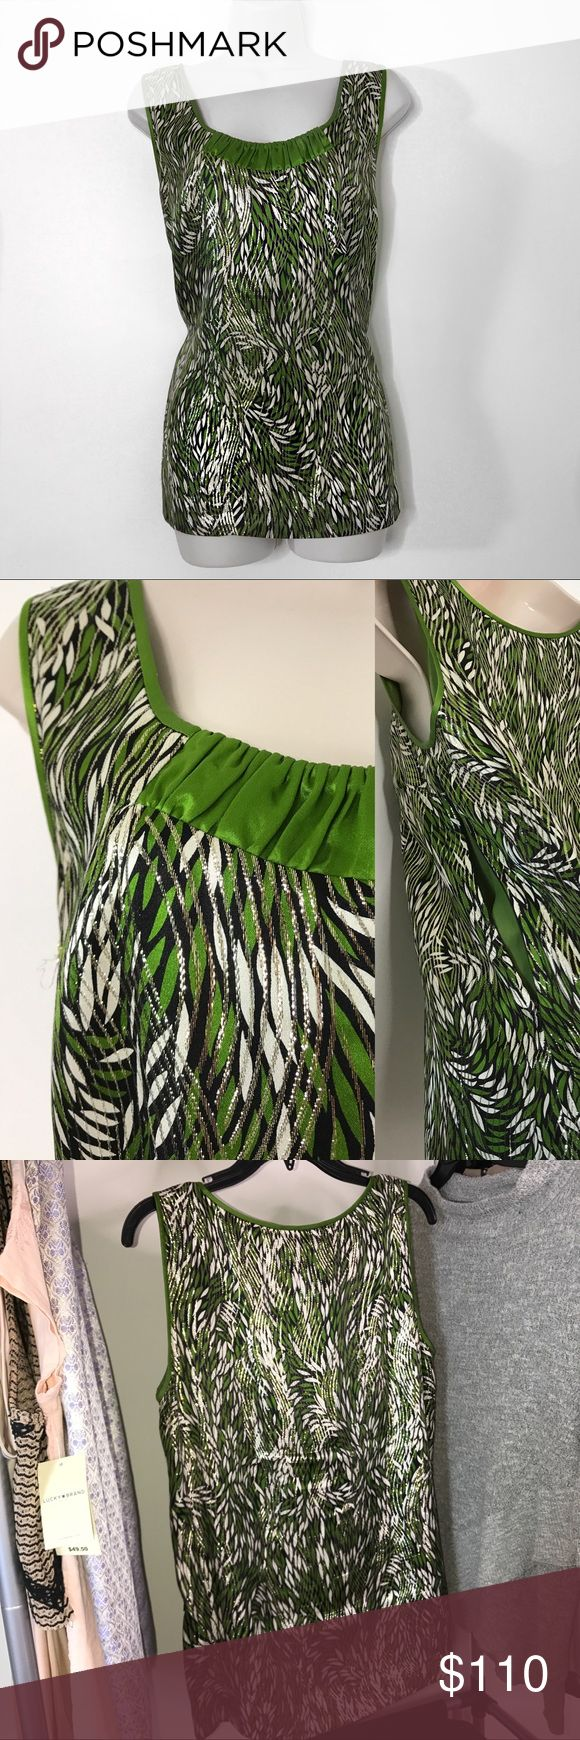 Tory Burch Green Metallic Blouse Tory Burch Blouse with green ruffle detail and a beautiful metallic multi print sheen  Zipper on side to put on and off  Size 12 Originally $319  If interested or have questions feel free to inquire ♡ Tory Burch Tops Blouses